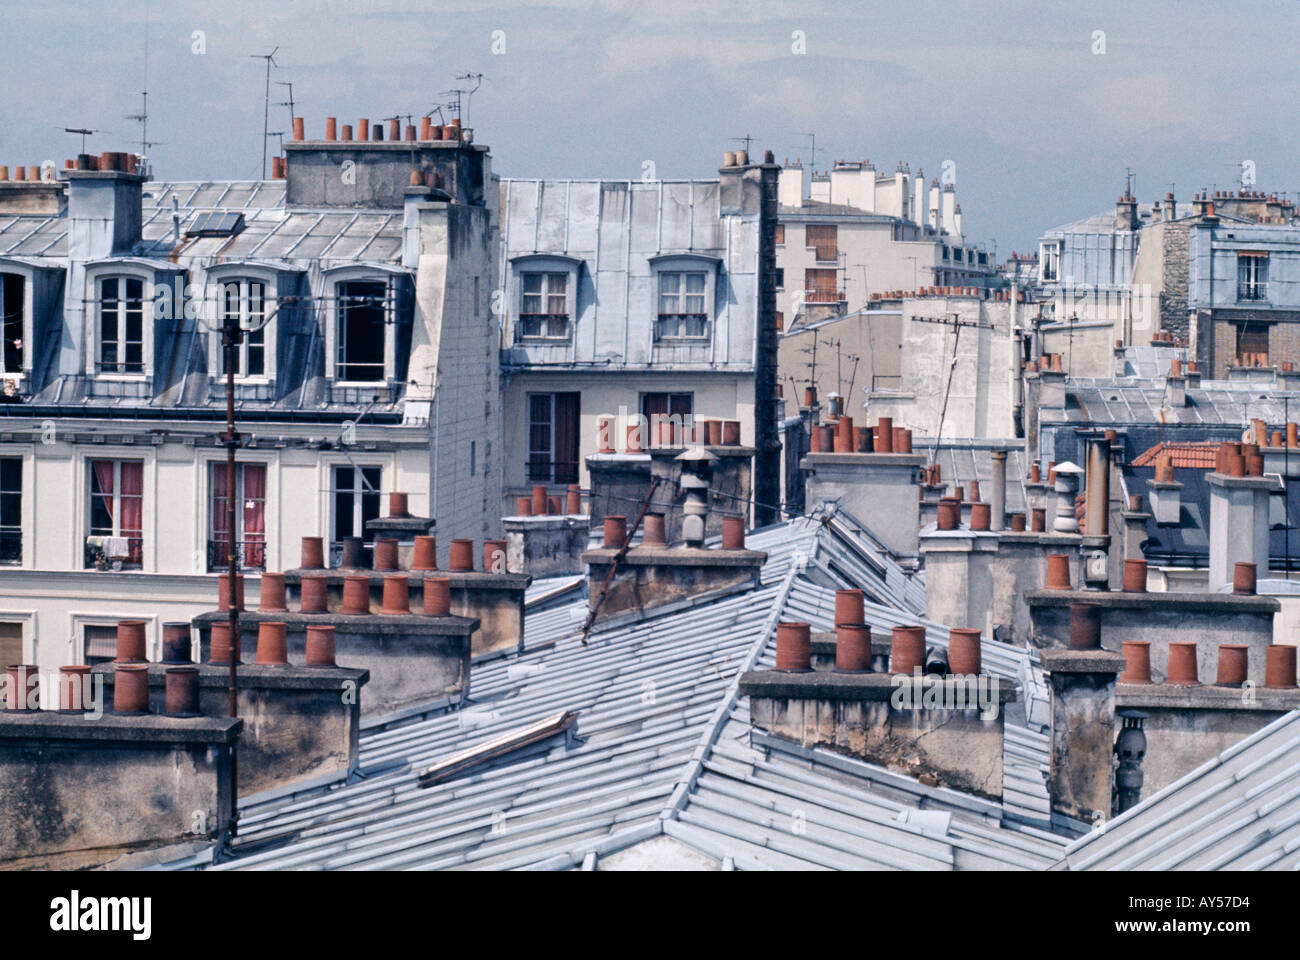 paris rooftops in the old and smart city centre stock photo royalty free image 1791955 alamy. Black Bedroom Furniture Sets. Home Design Ideas